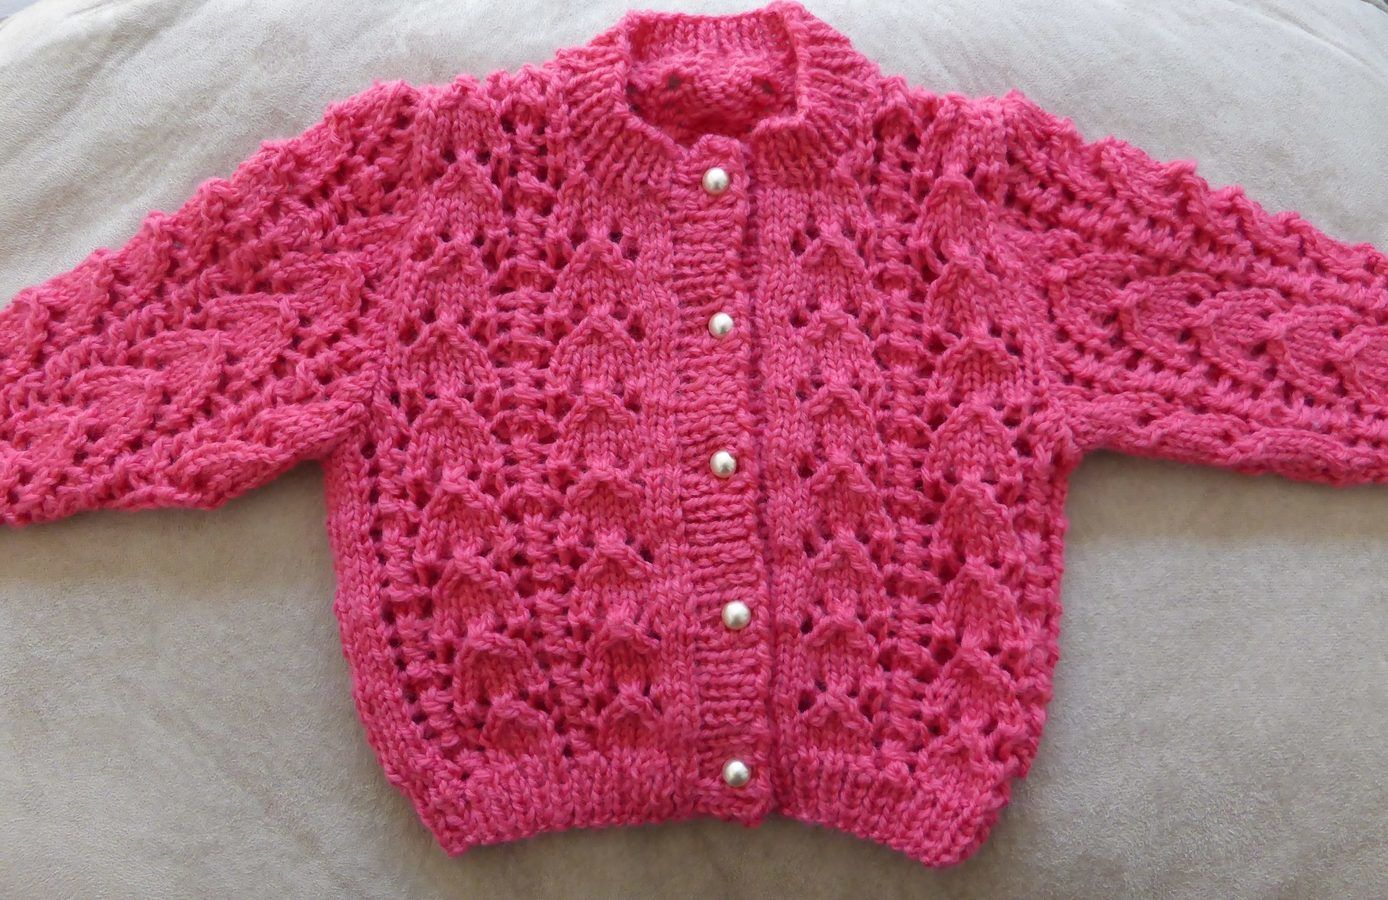 8ply Knitting Patterns For Babies